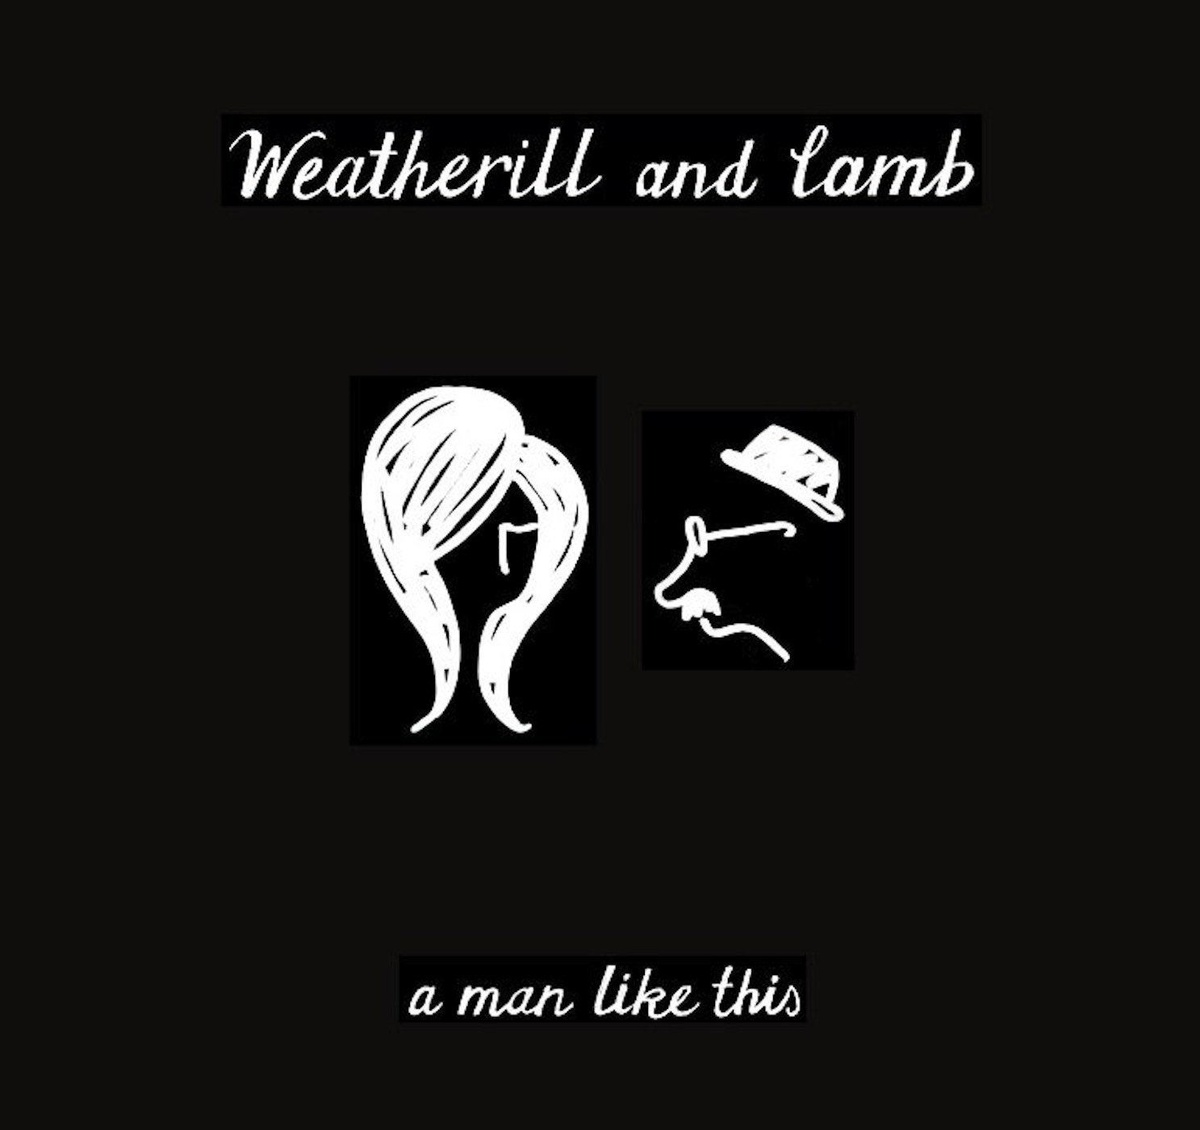 Cover art for A man like this by weatherill and lamb